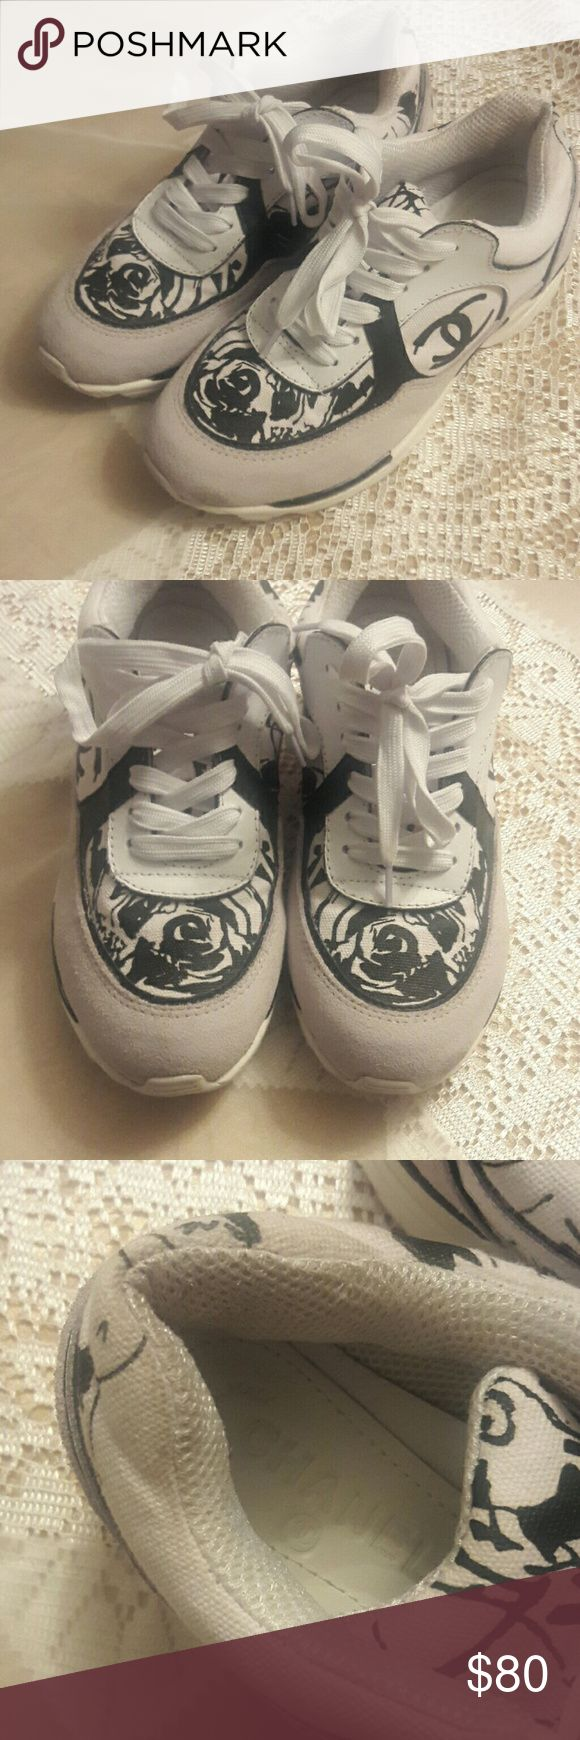 Chanel  sneakers Chanel graffiti sneakers price  reflects authenticity offers accepted CHANEL Shoes Athletic Shoes